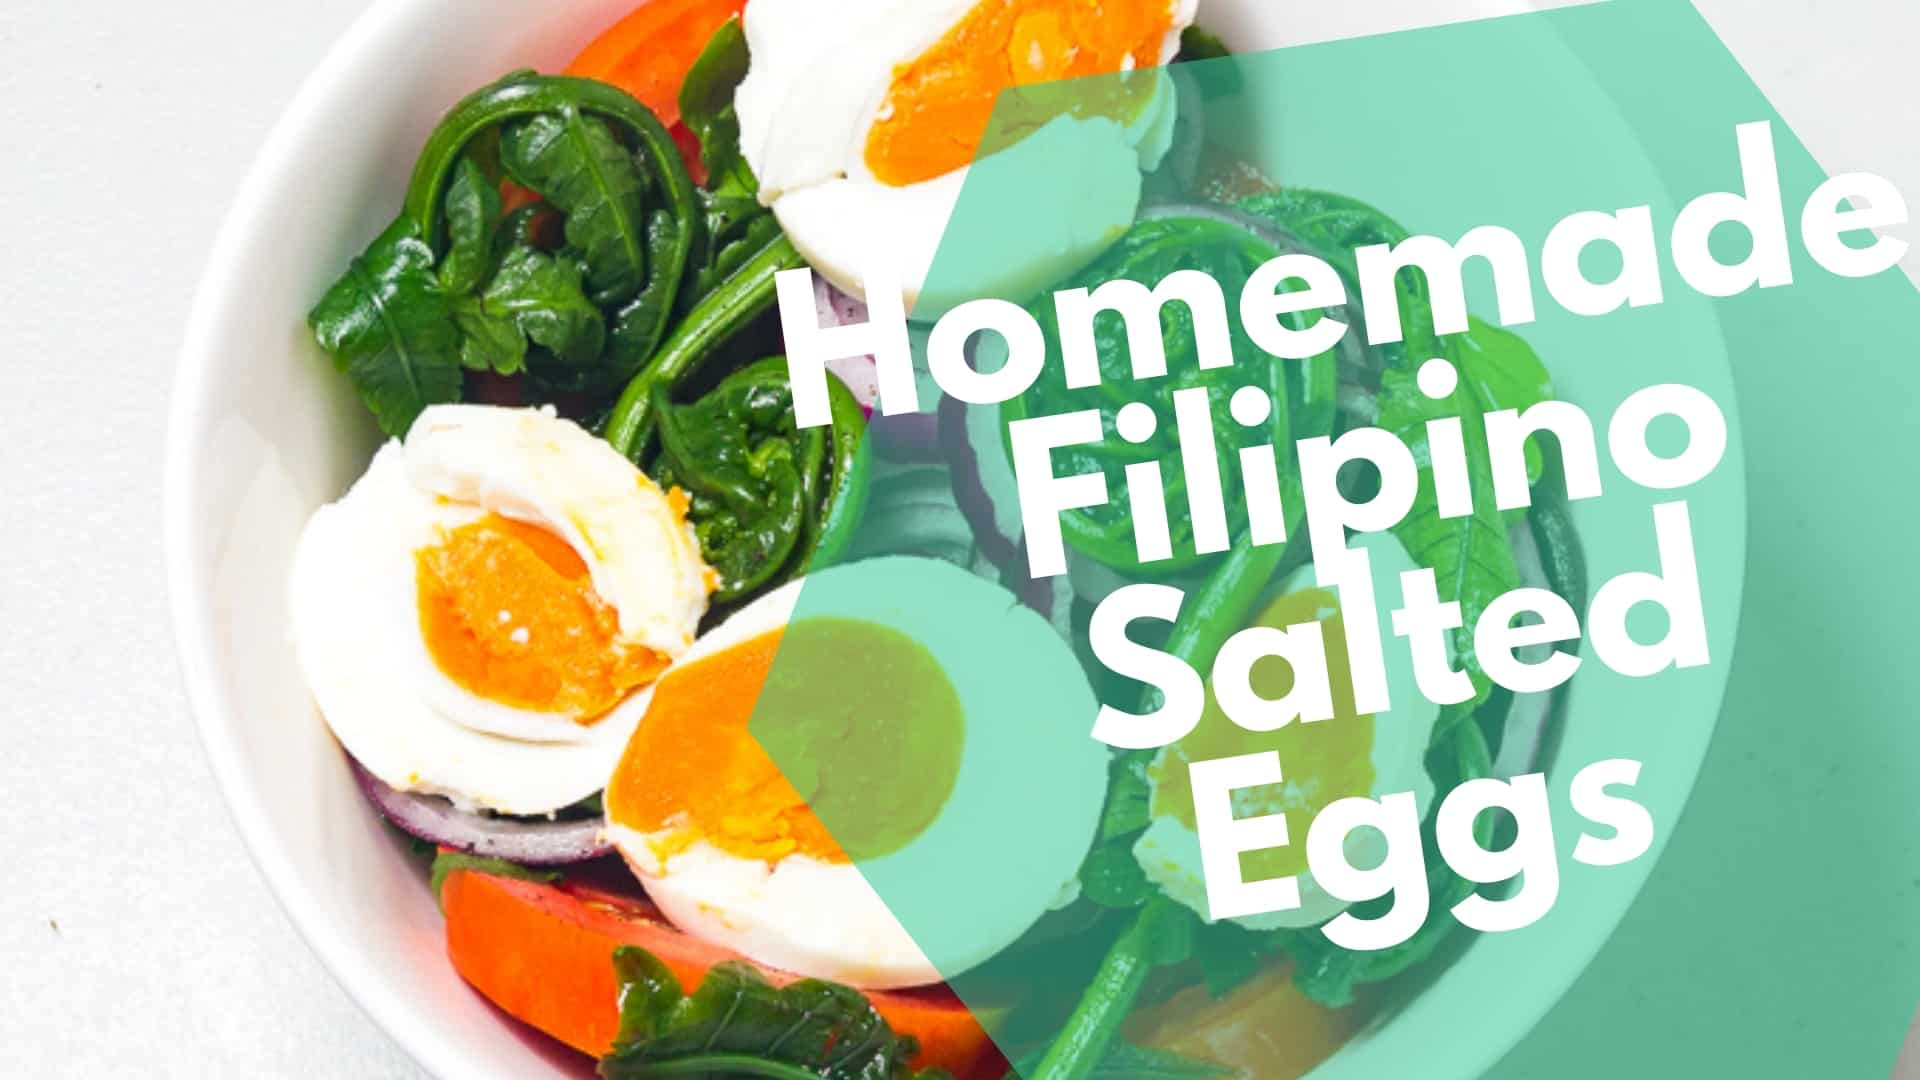 Homemade Filipino Salted Eggs